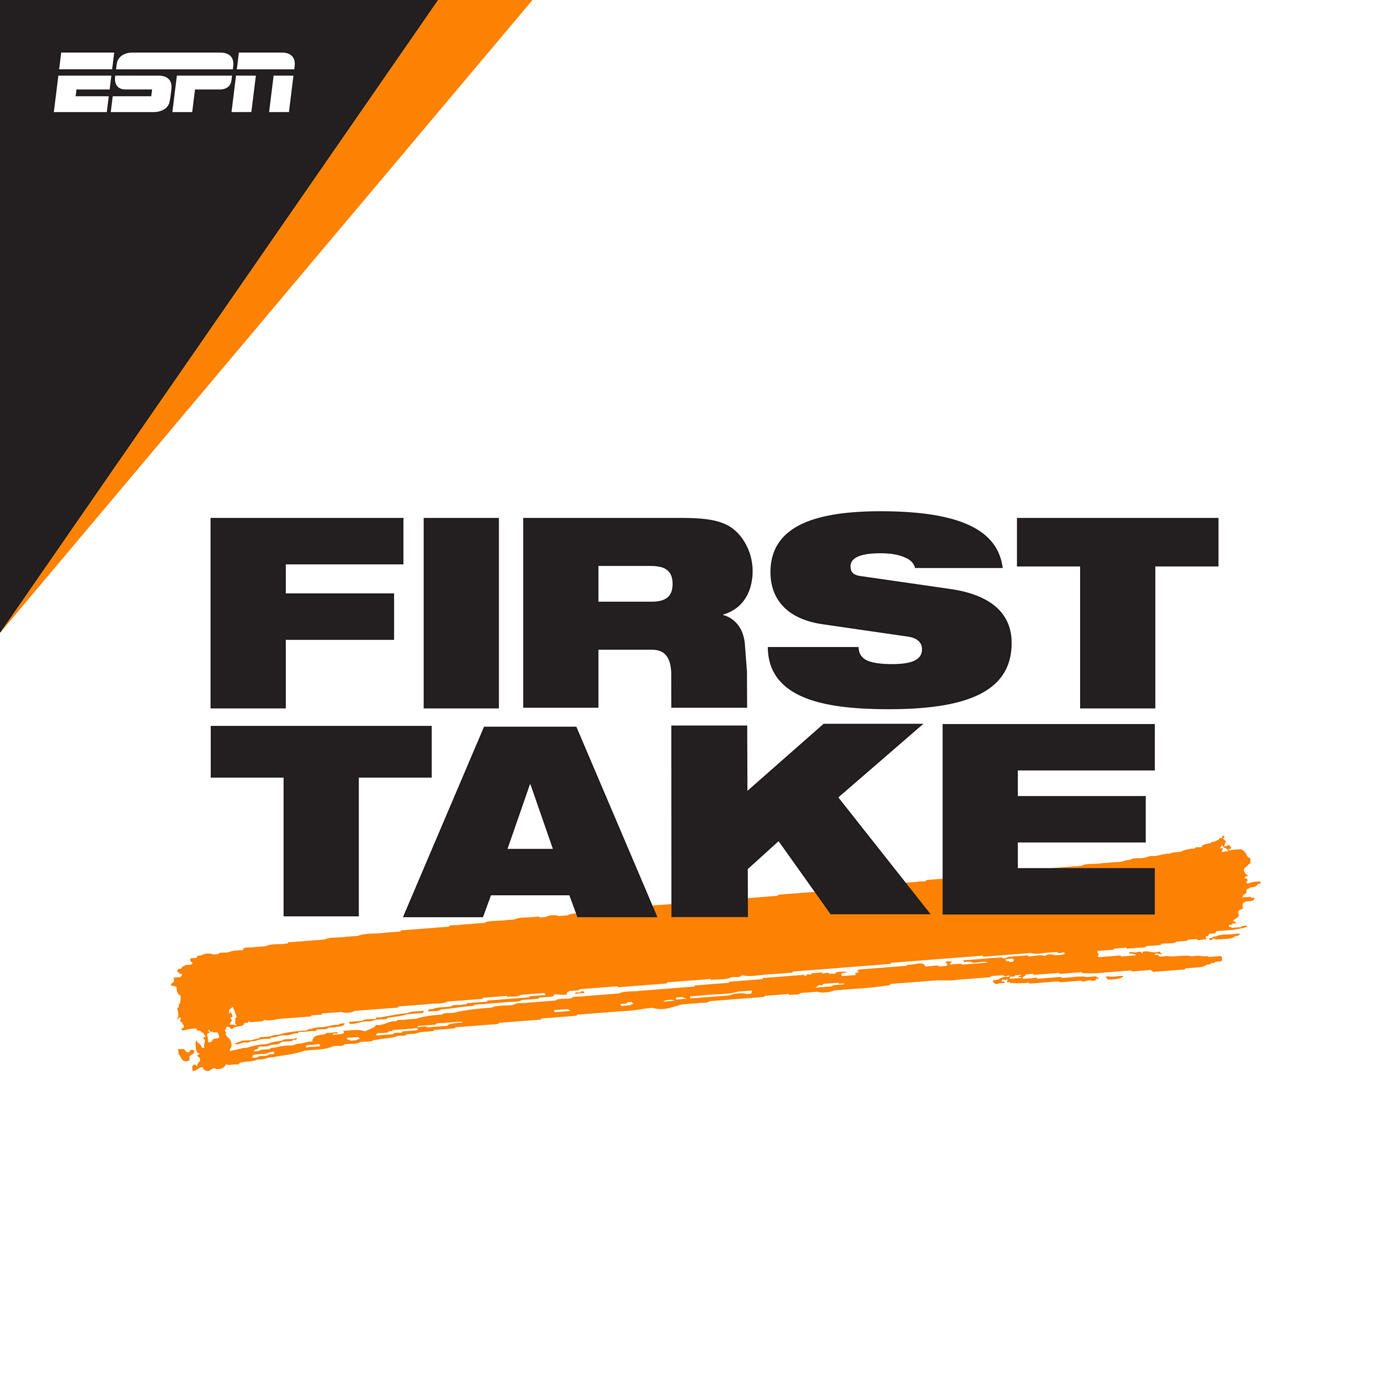 First Take podcast cover photo